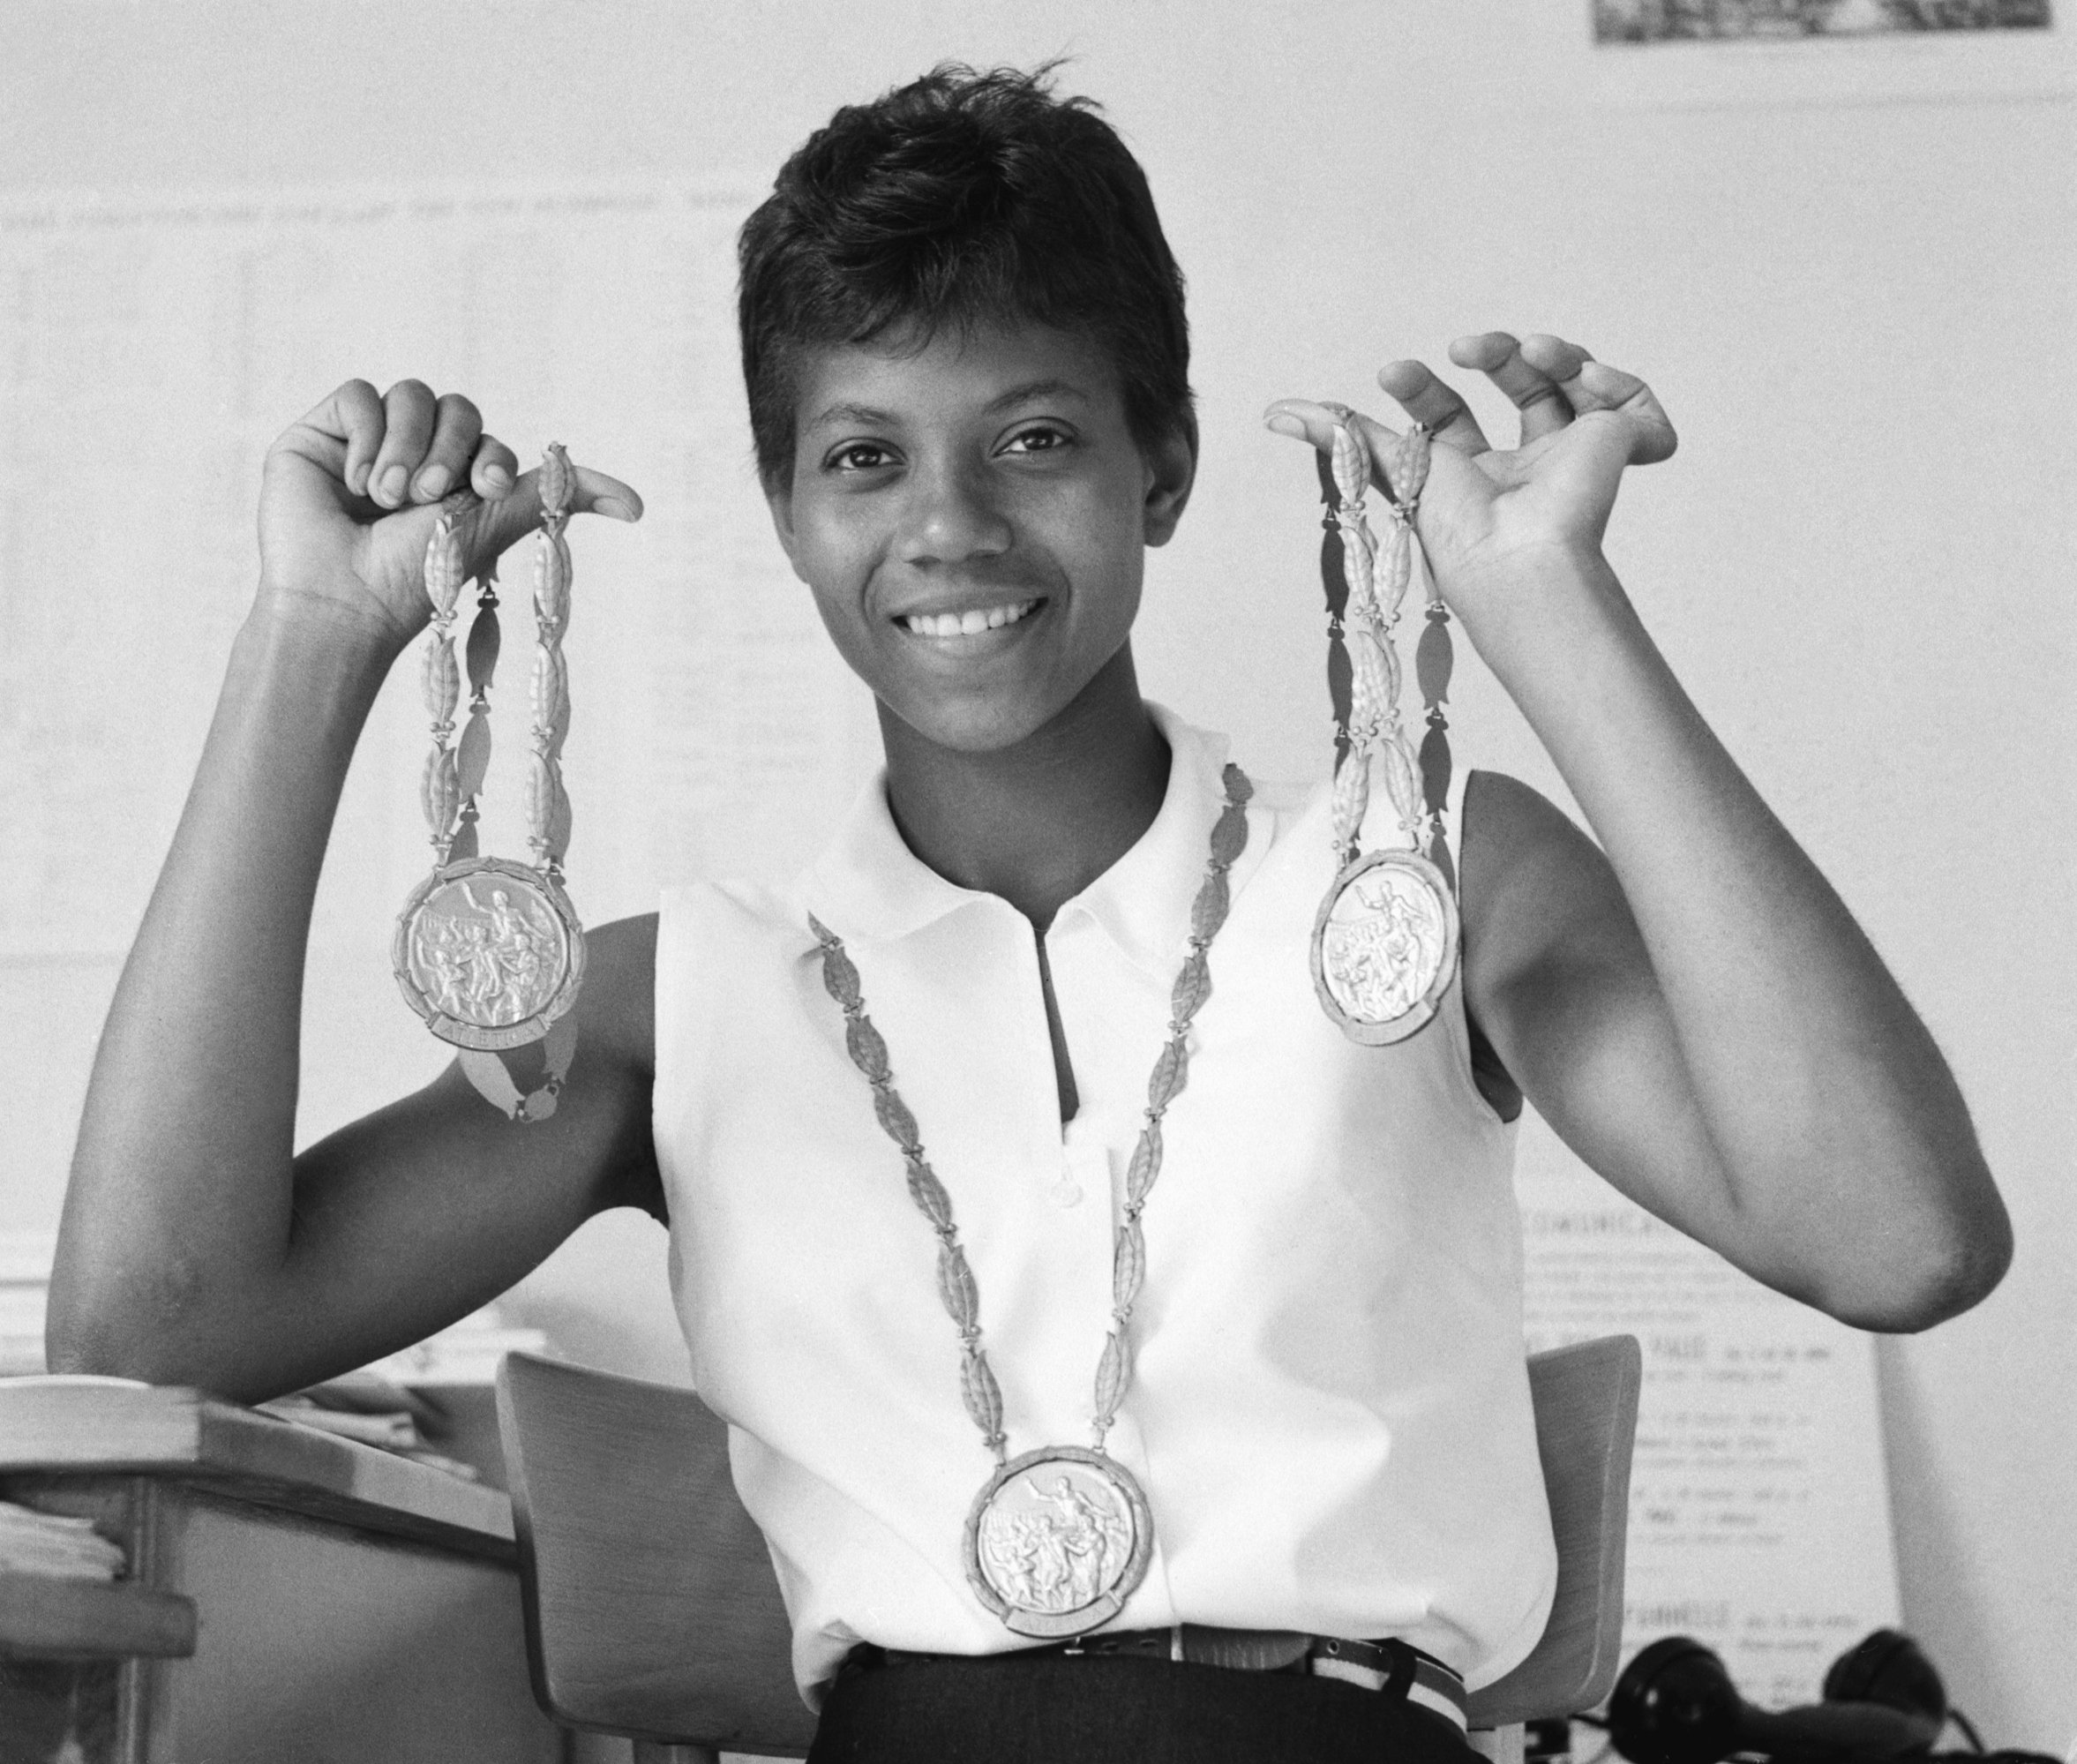 Wilma Rudolph shows off the three gold medals she won at the 1960 Olympics in Rome on September 8, 1960   Photo: Getty Images